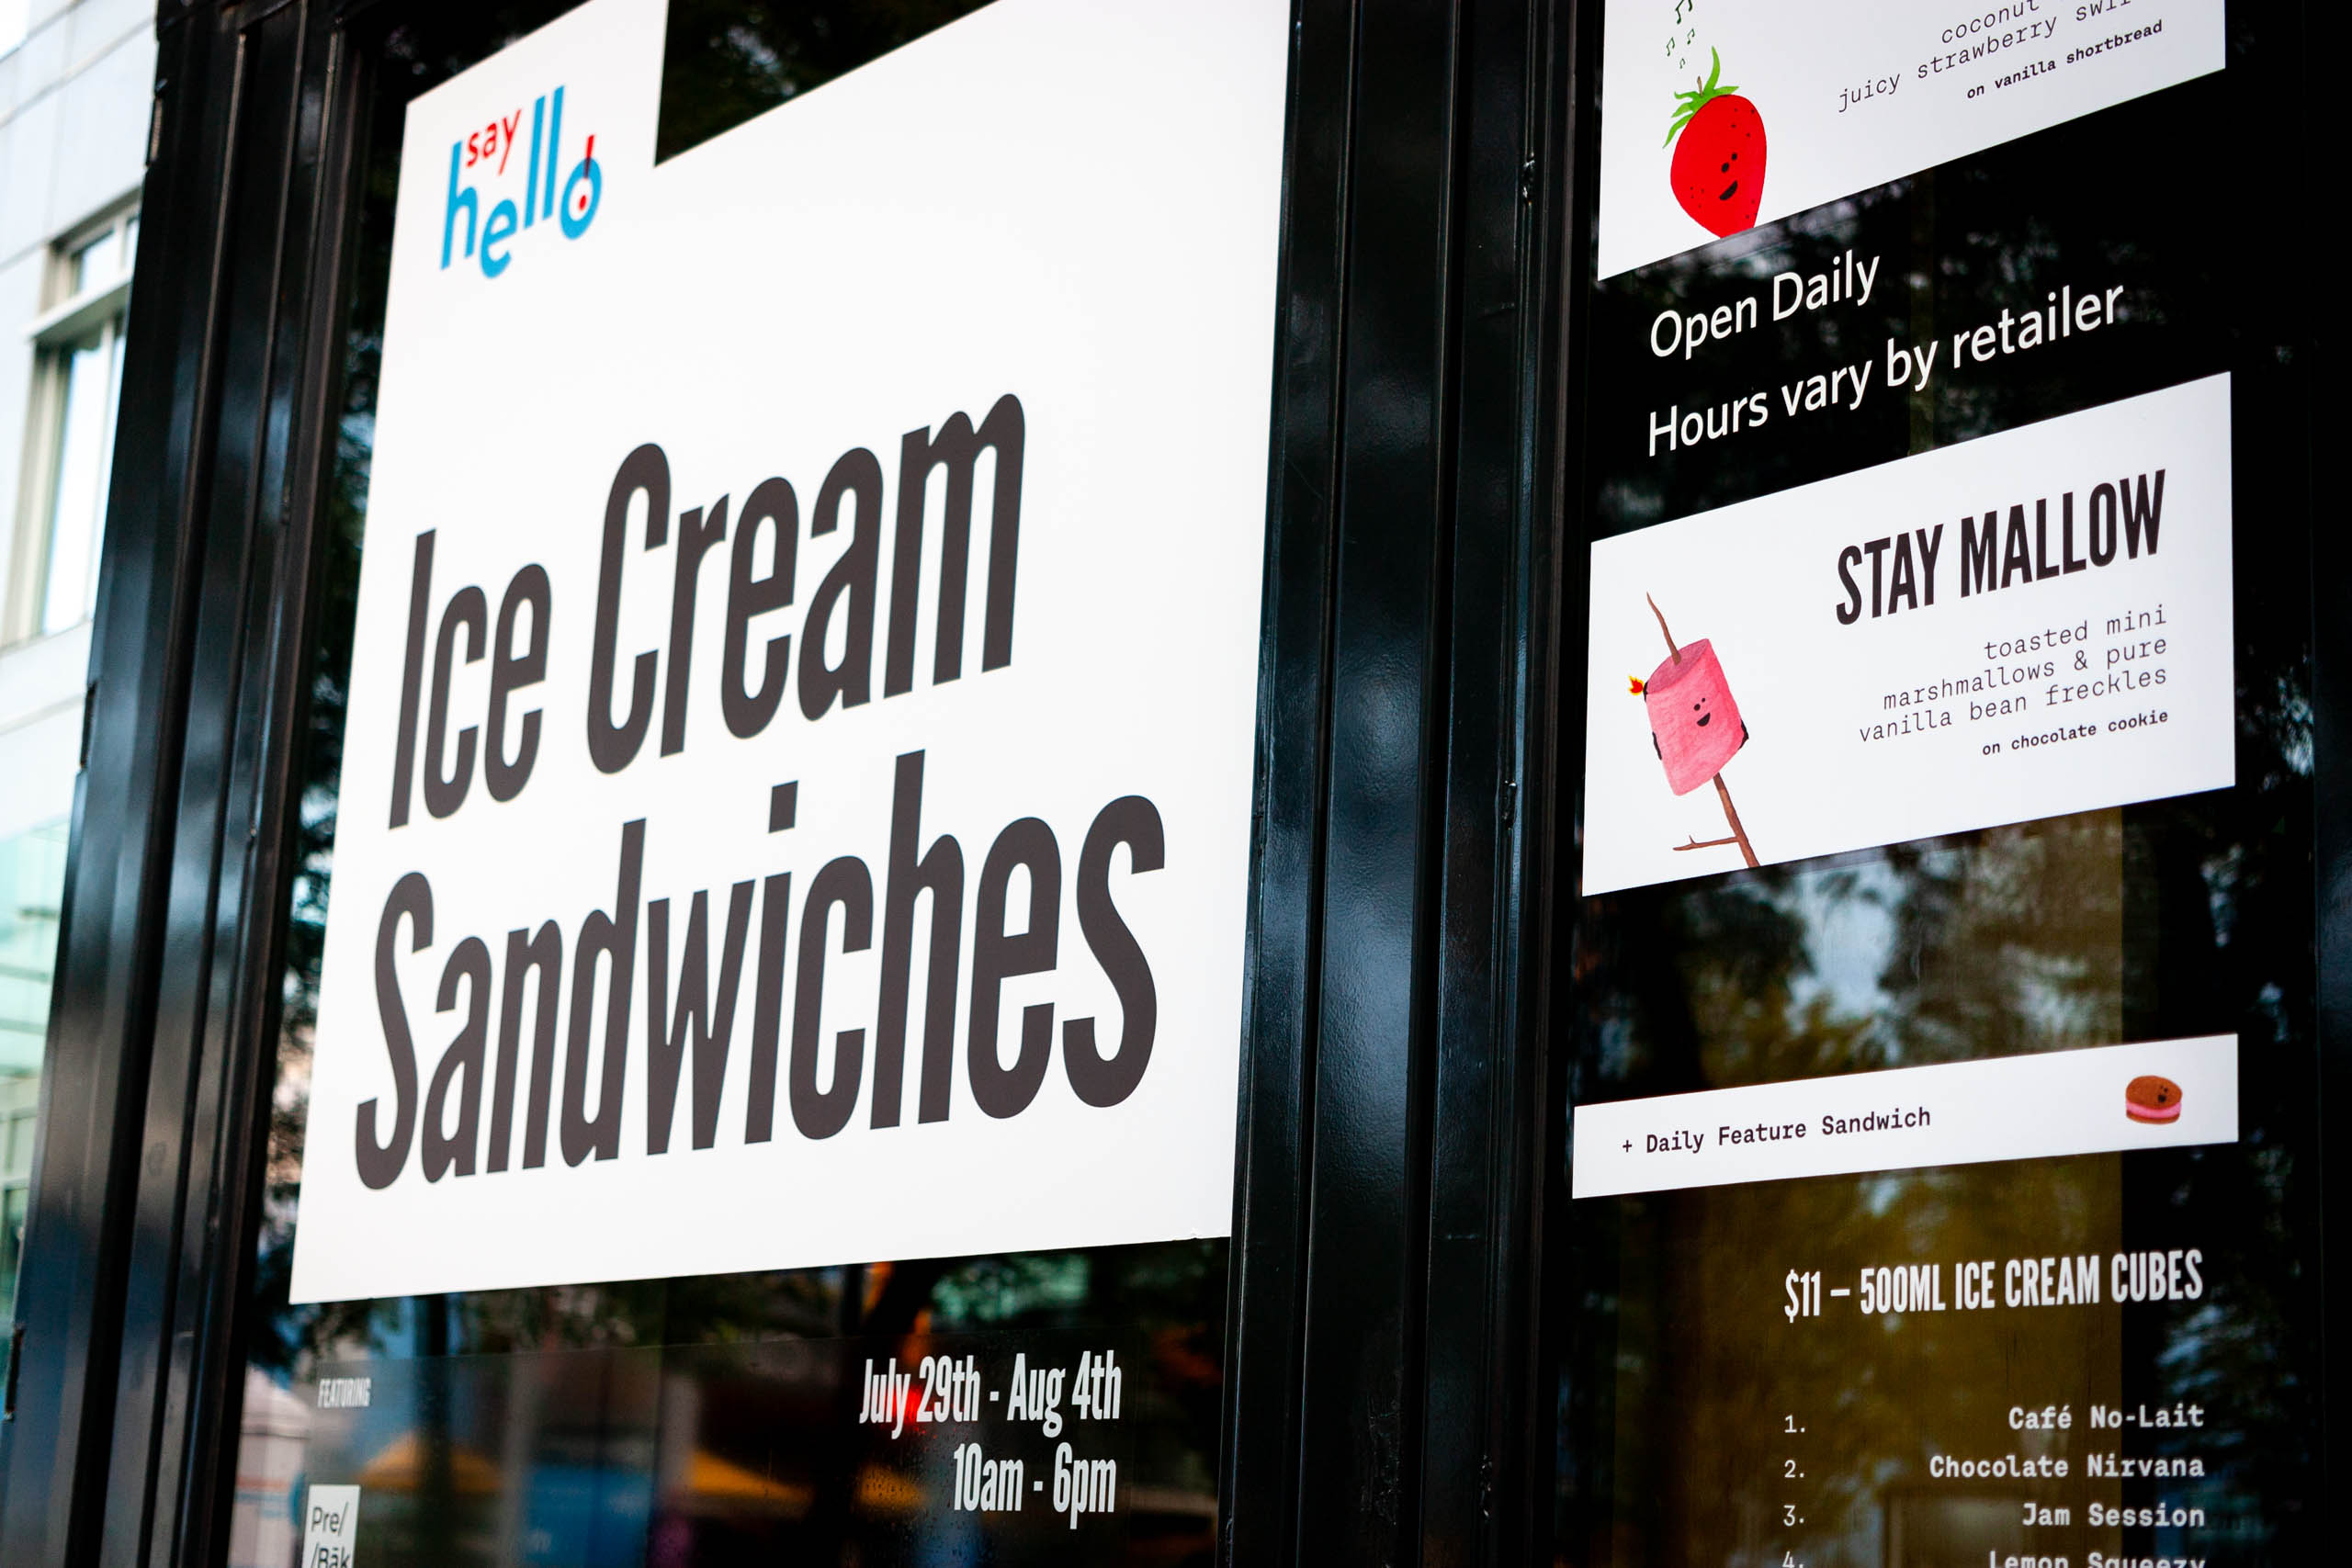 Say Hello Store at the Vancouver Convention center, featuring prominent window design advertising the featured Ice Cream Sandwiches — by Yagnyuk.